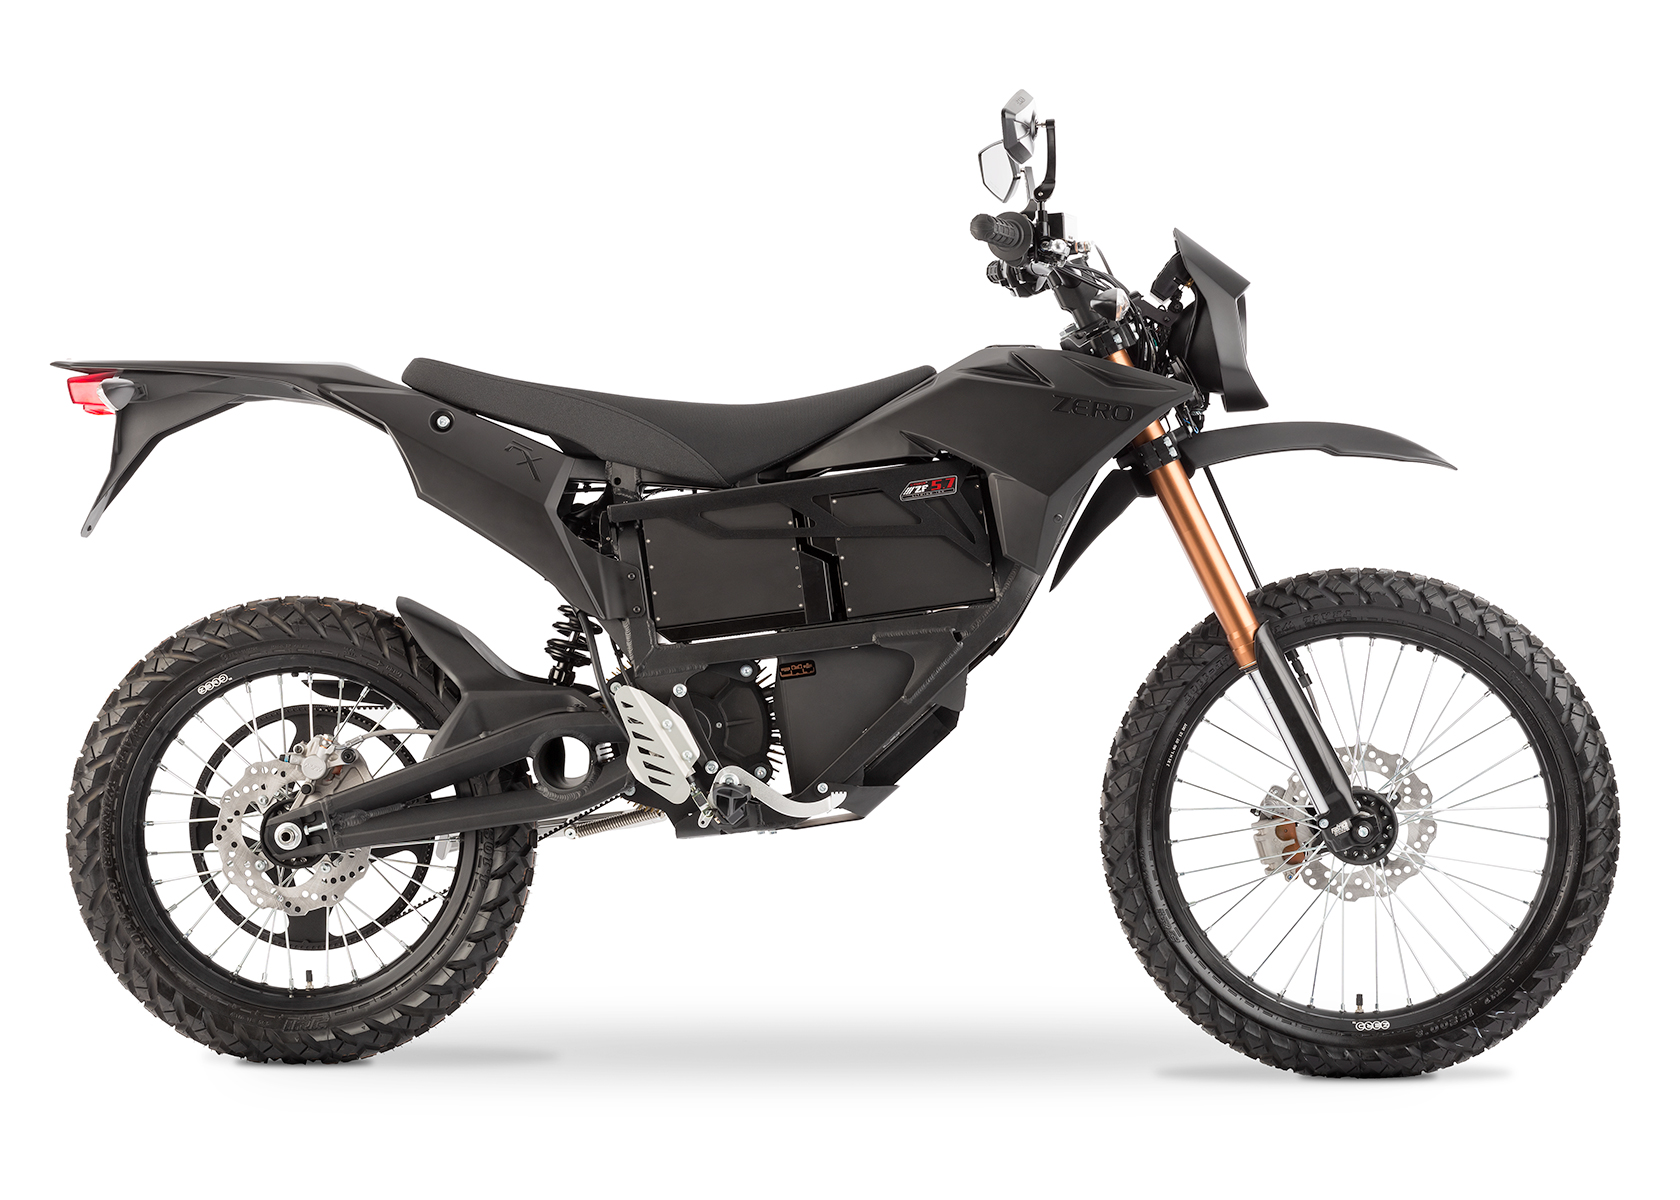 2013 Zero FX Electric Motorcycle: Black Profile Right, White Background